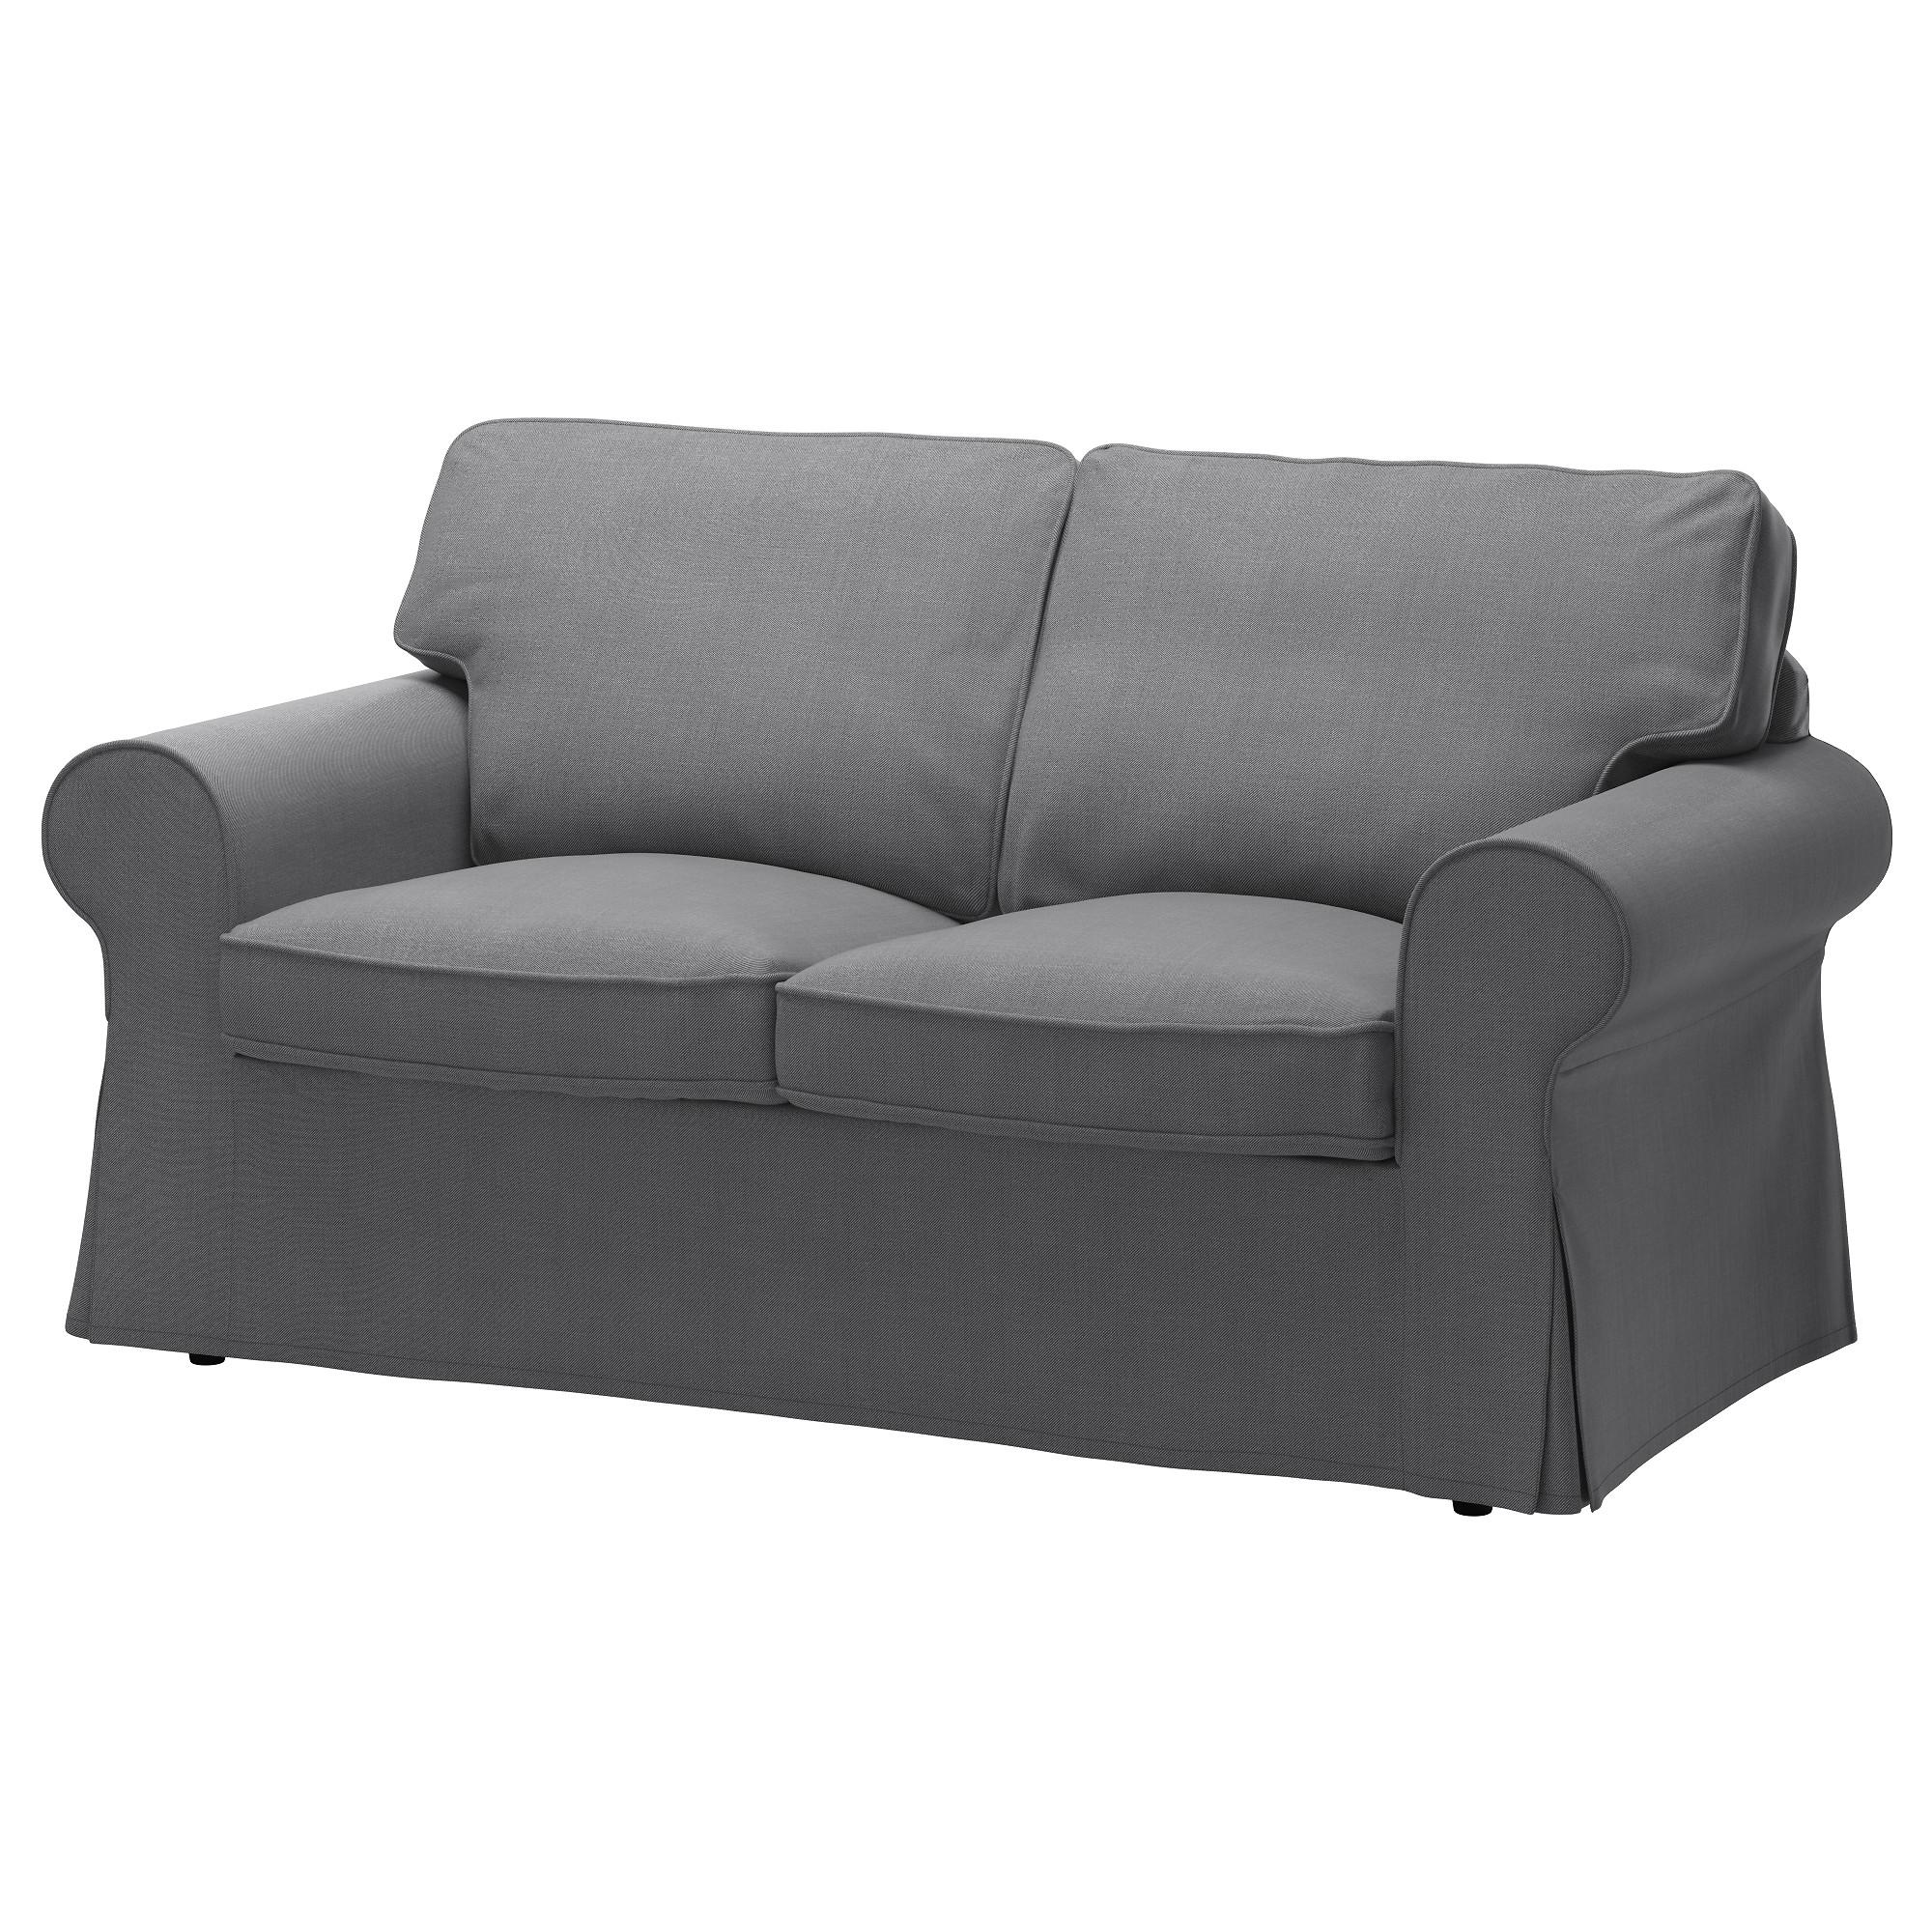 Small Sofa & 2 Seater Sofa | Ikea Within Two Seater Sofas (View 11 of 20)